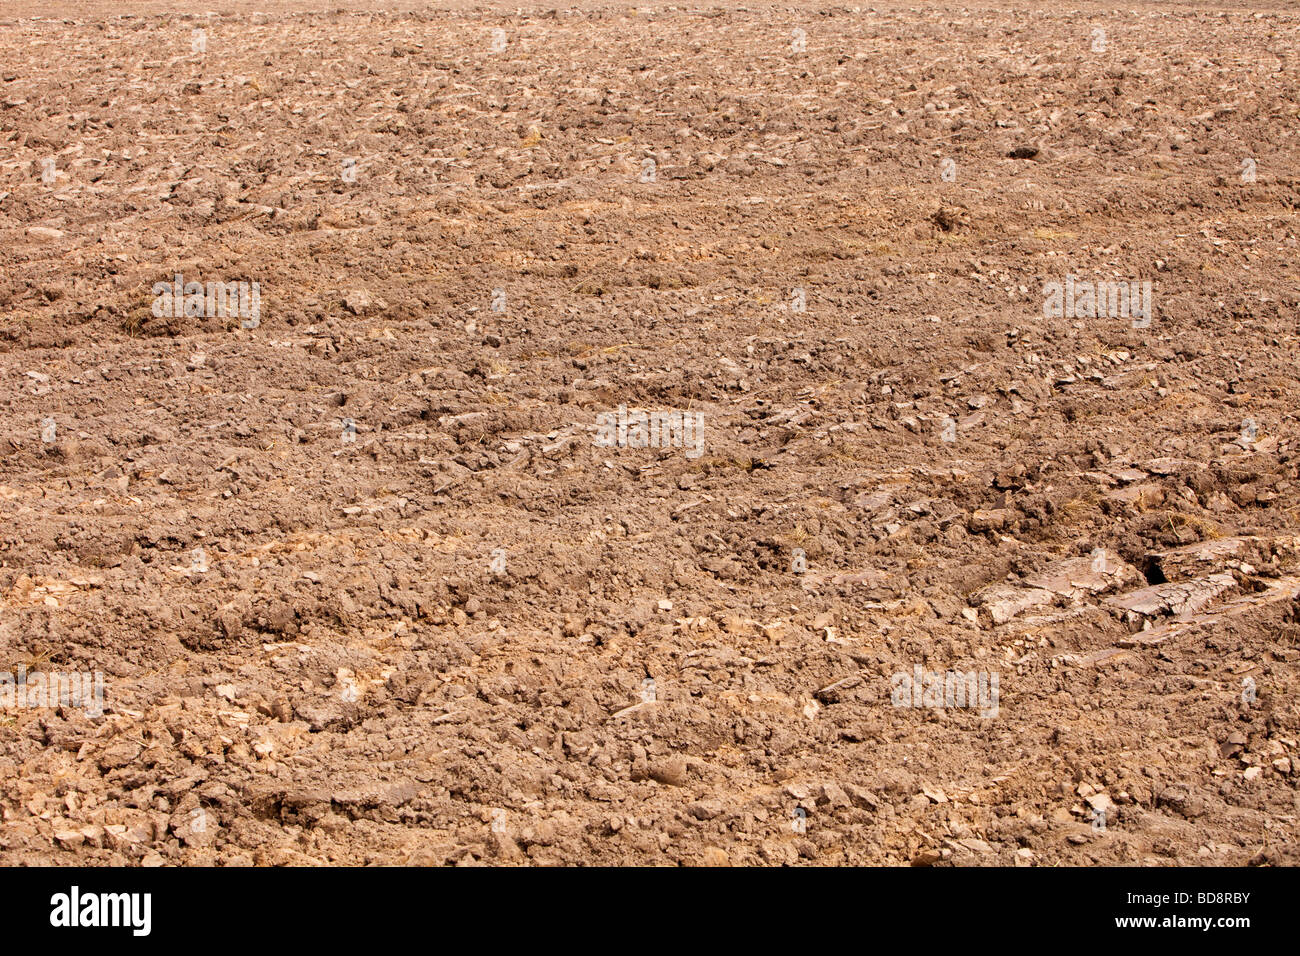 Ploughing soil for farming helps release C02 into the atmosphere and contributes to climate change - Stock Image